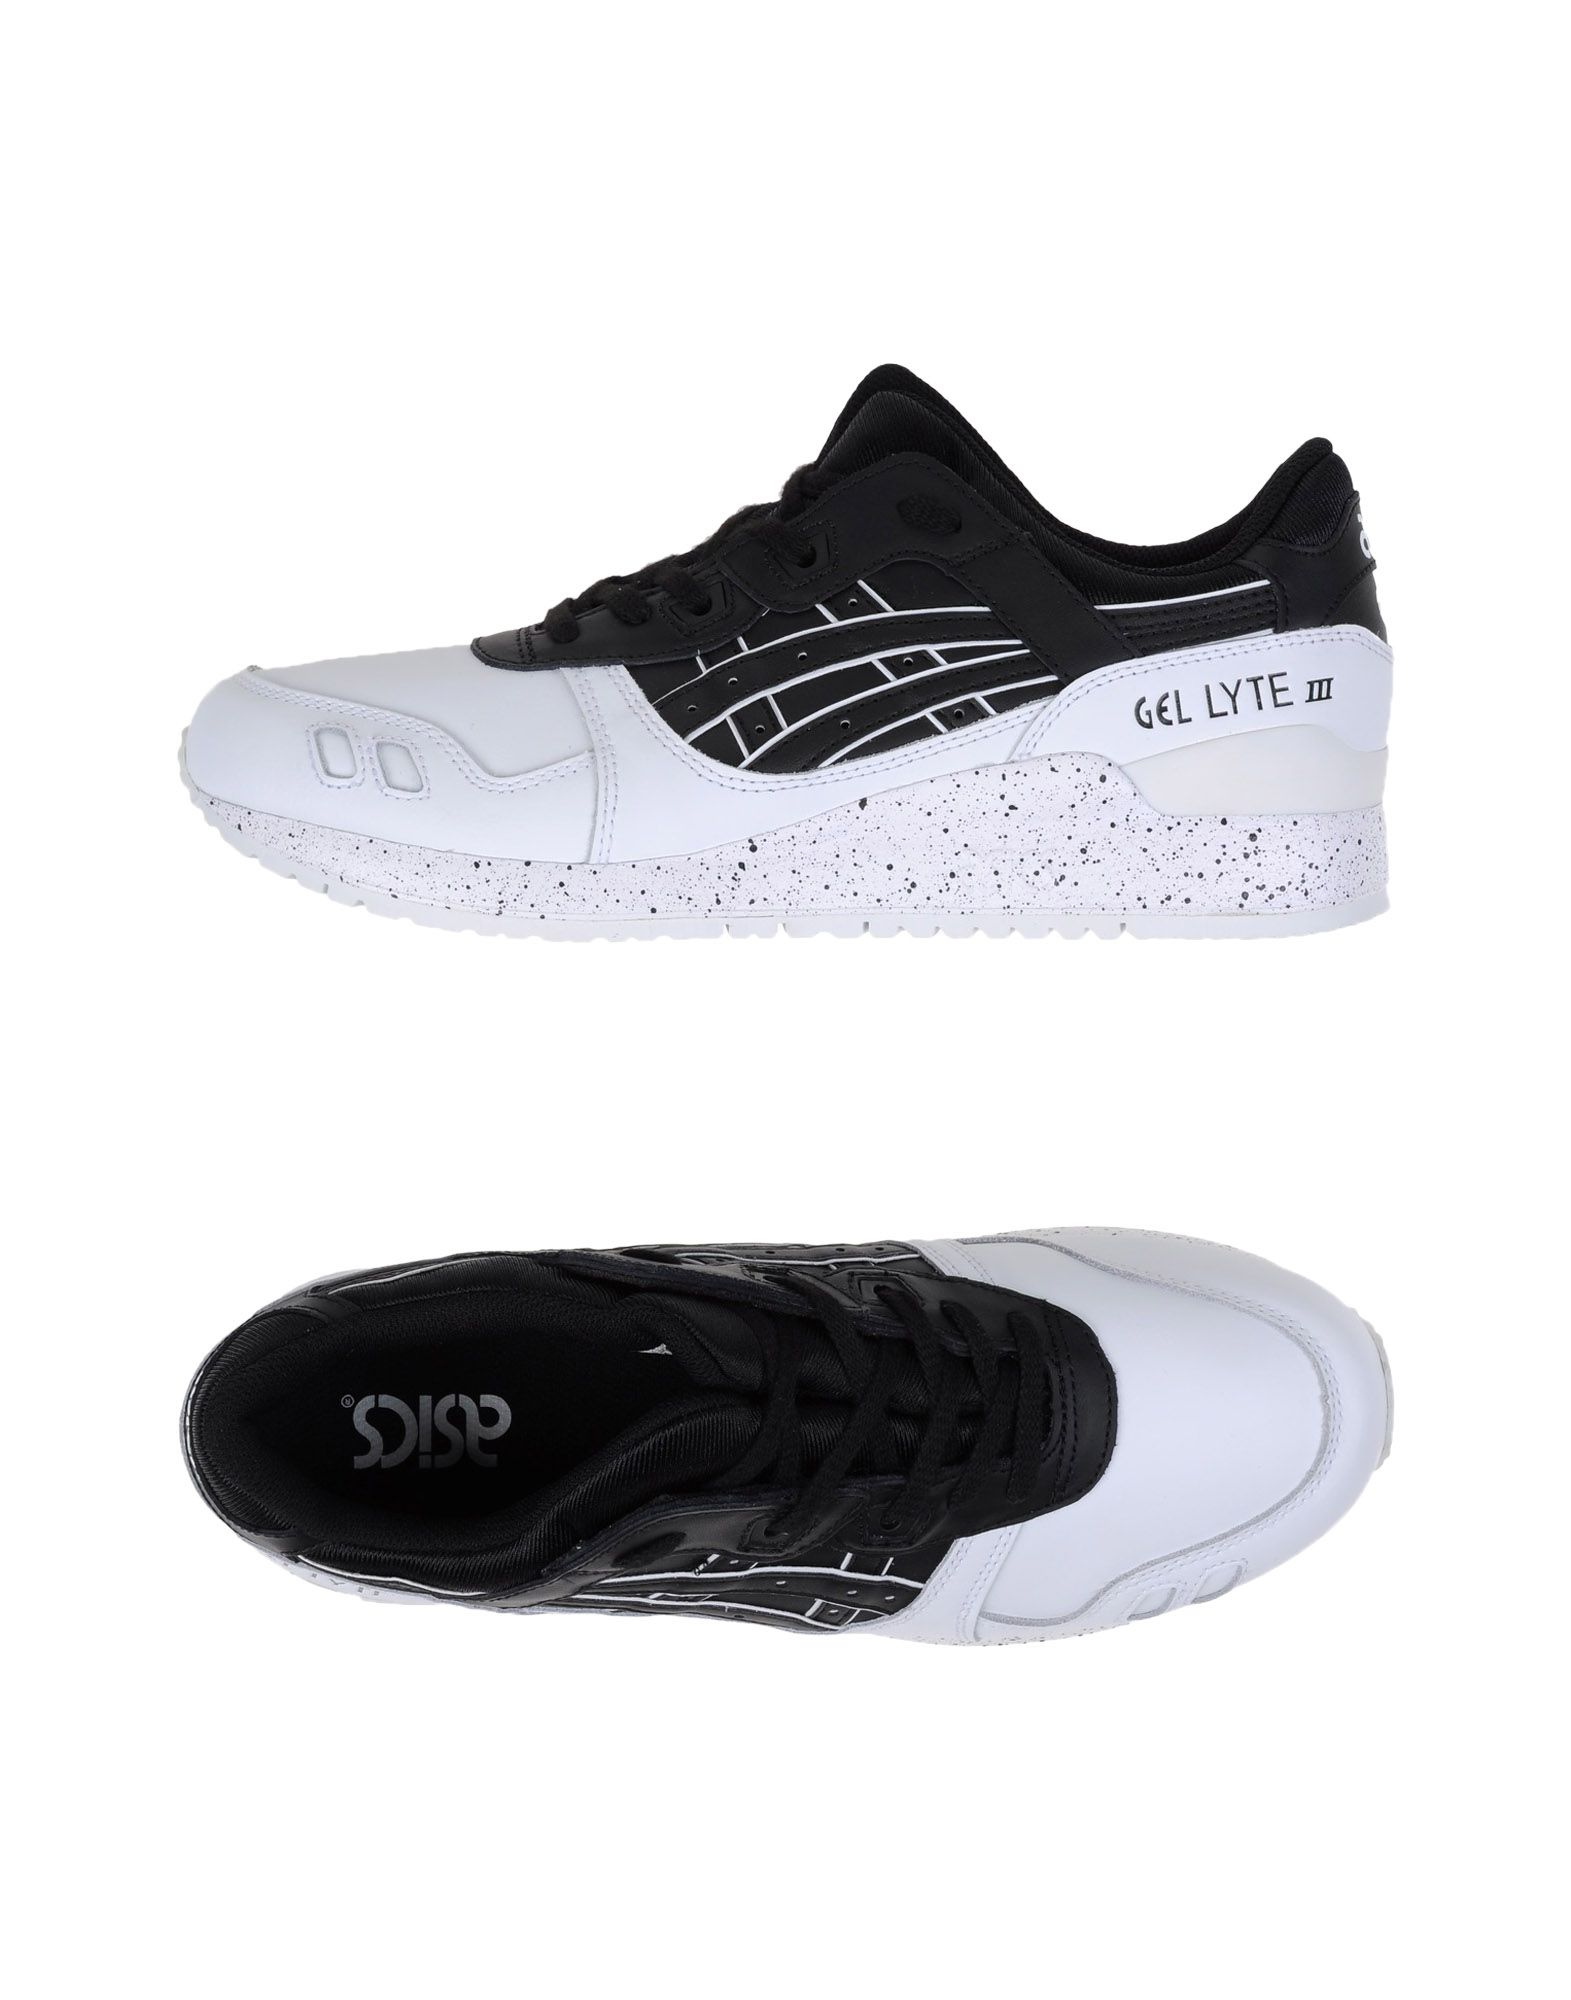 Sneakers Asics Tiger Gel-Lyte Iii - Homme - Sneakers Asics Tiger sur